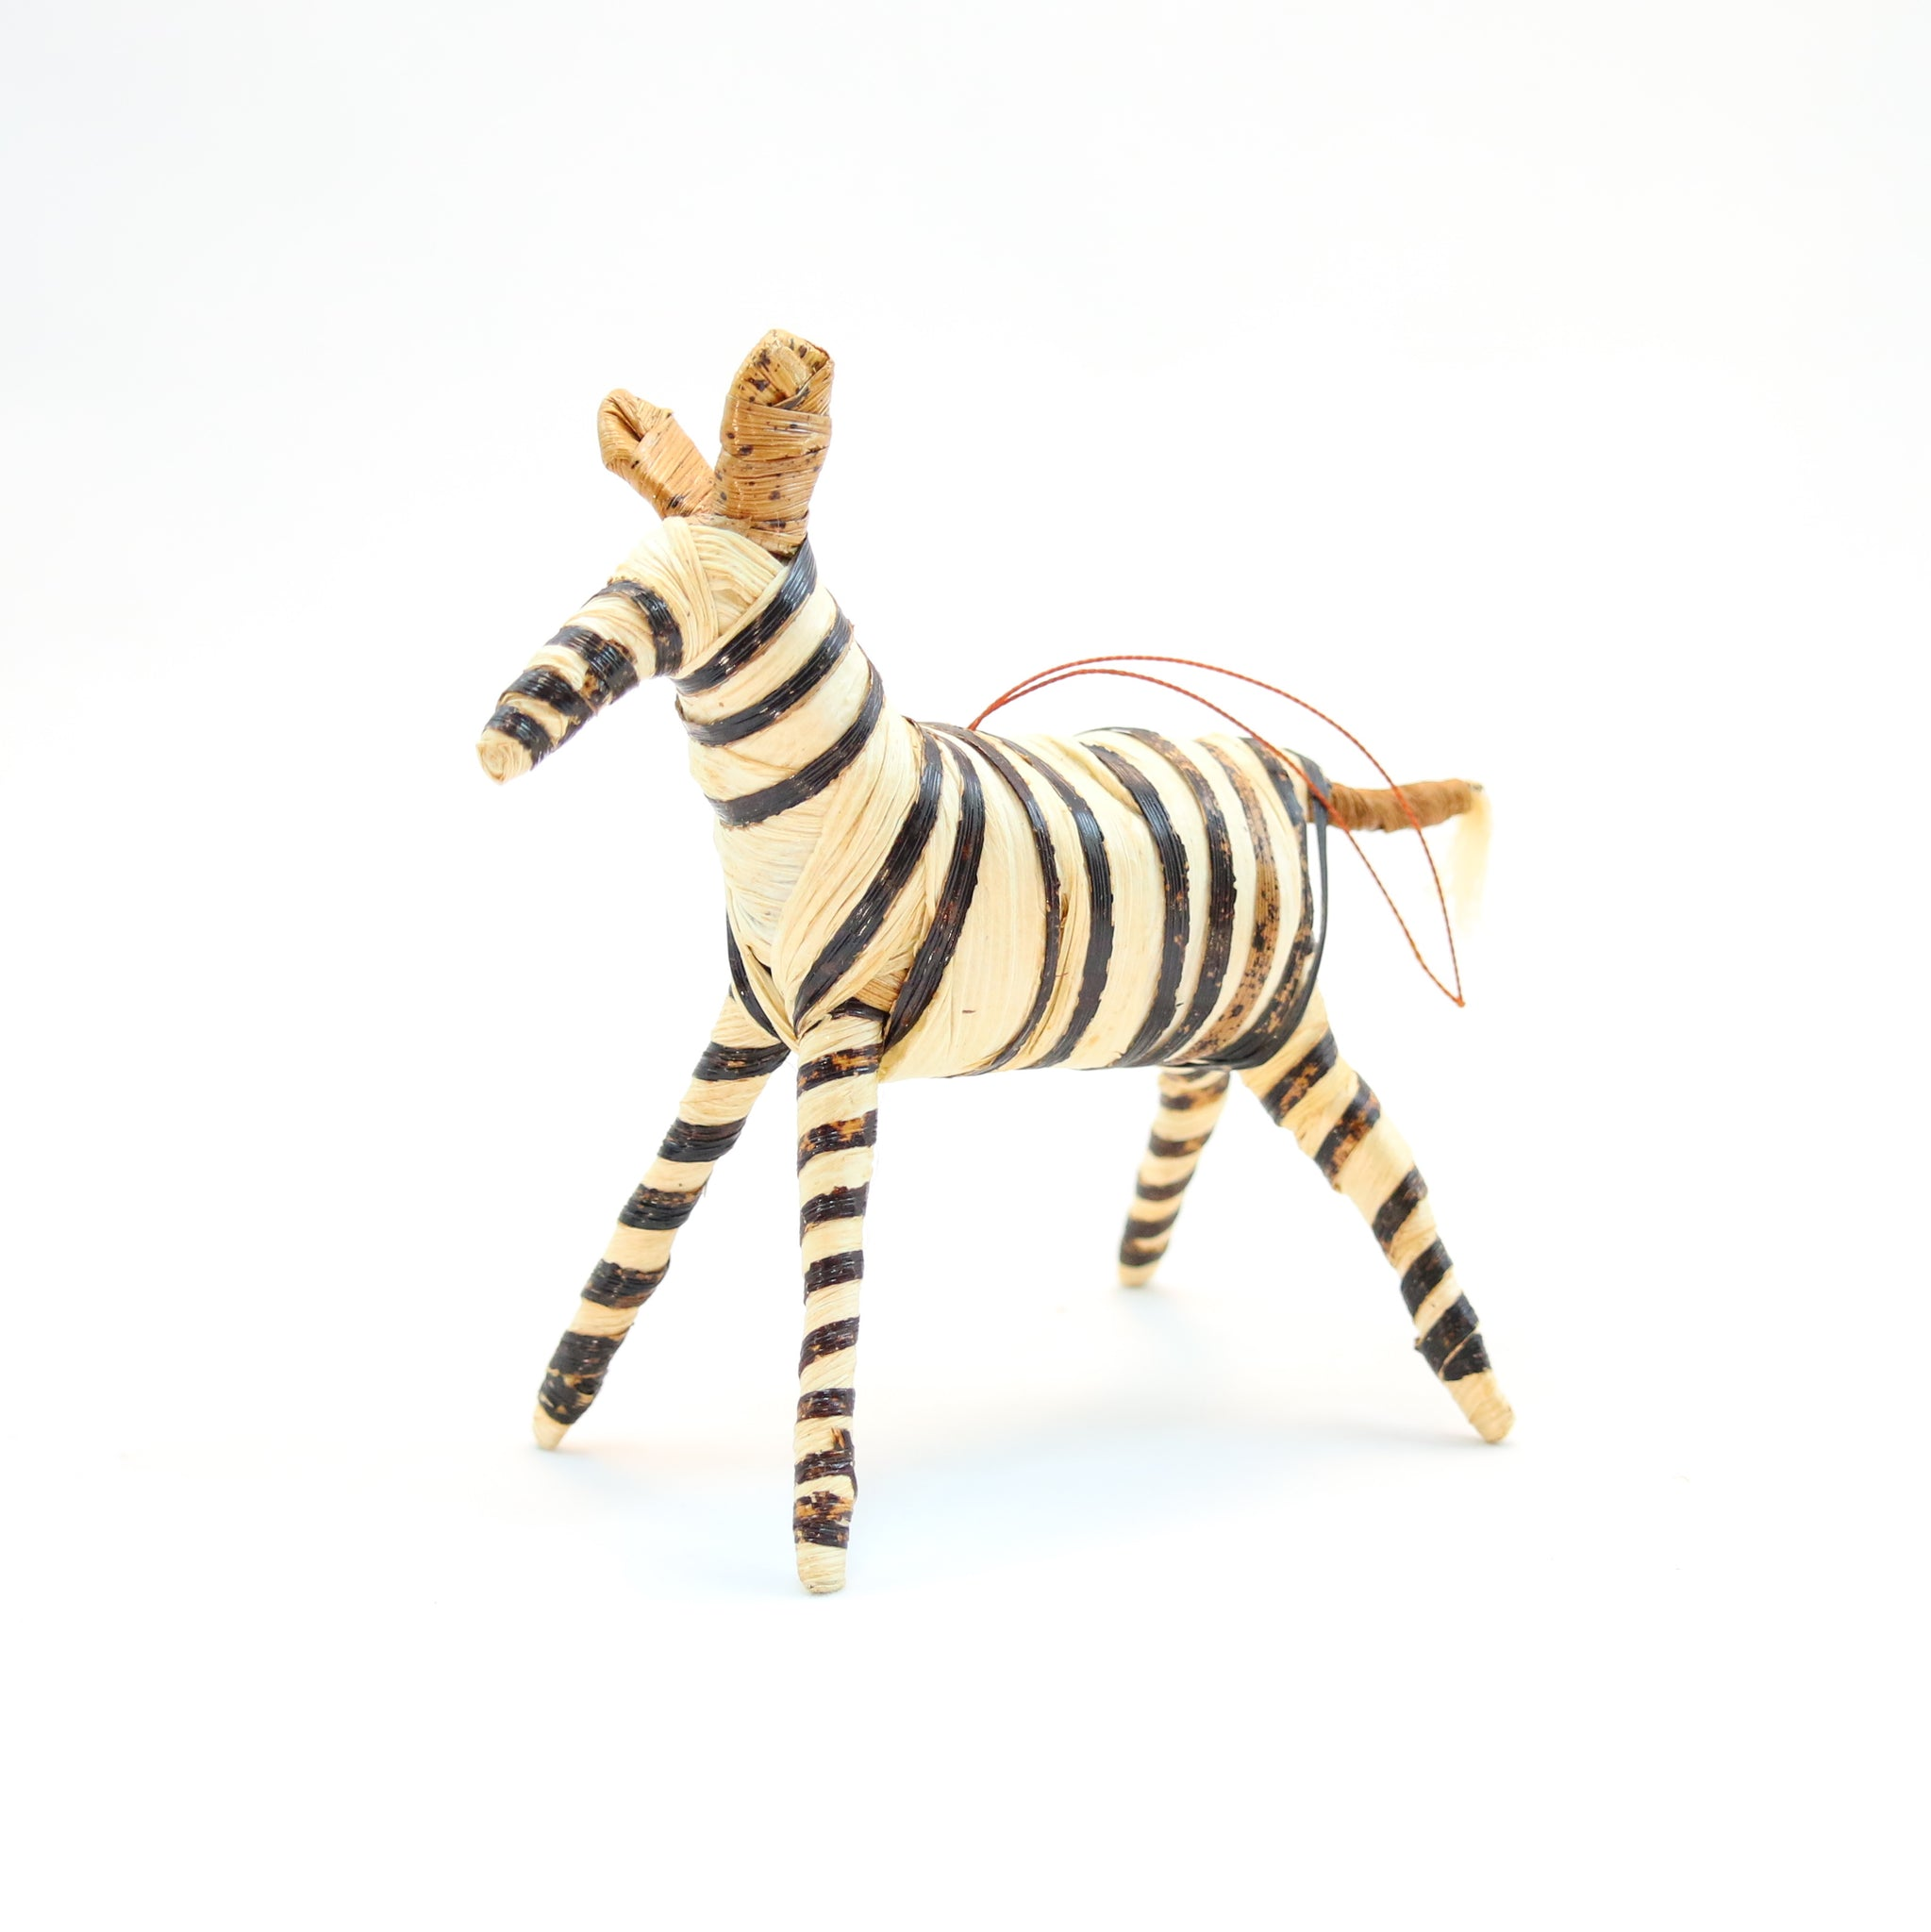 Banana Fiber Ornament - Zebra